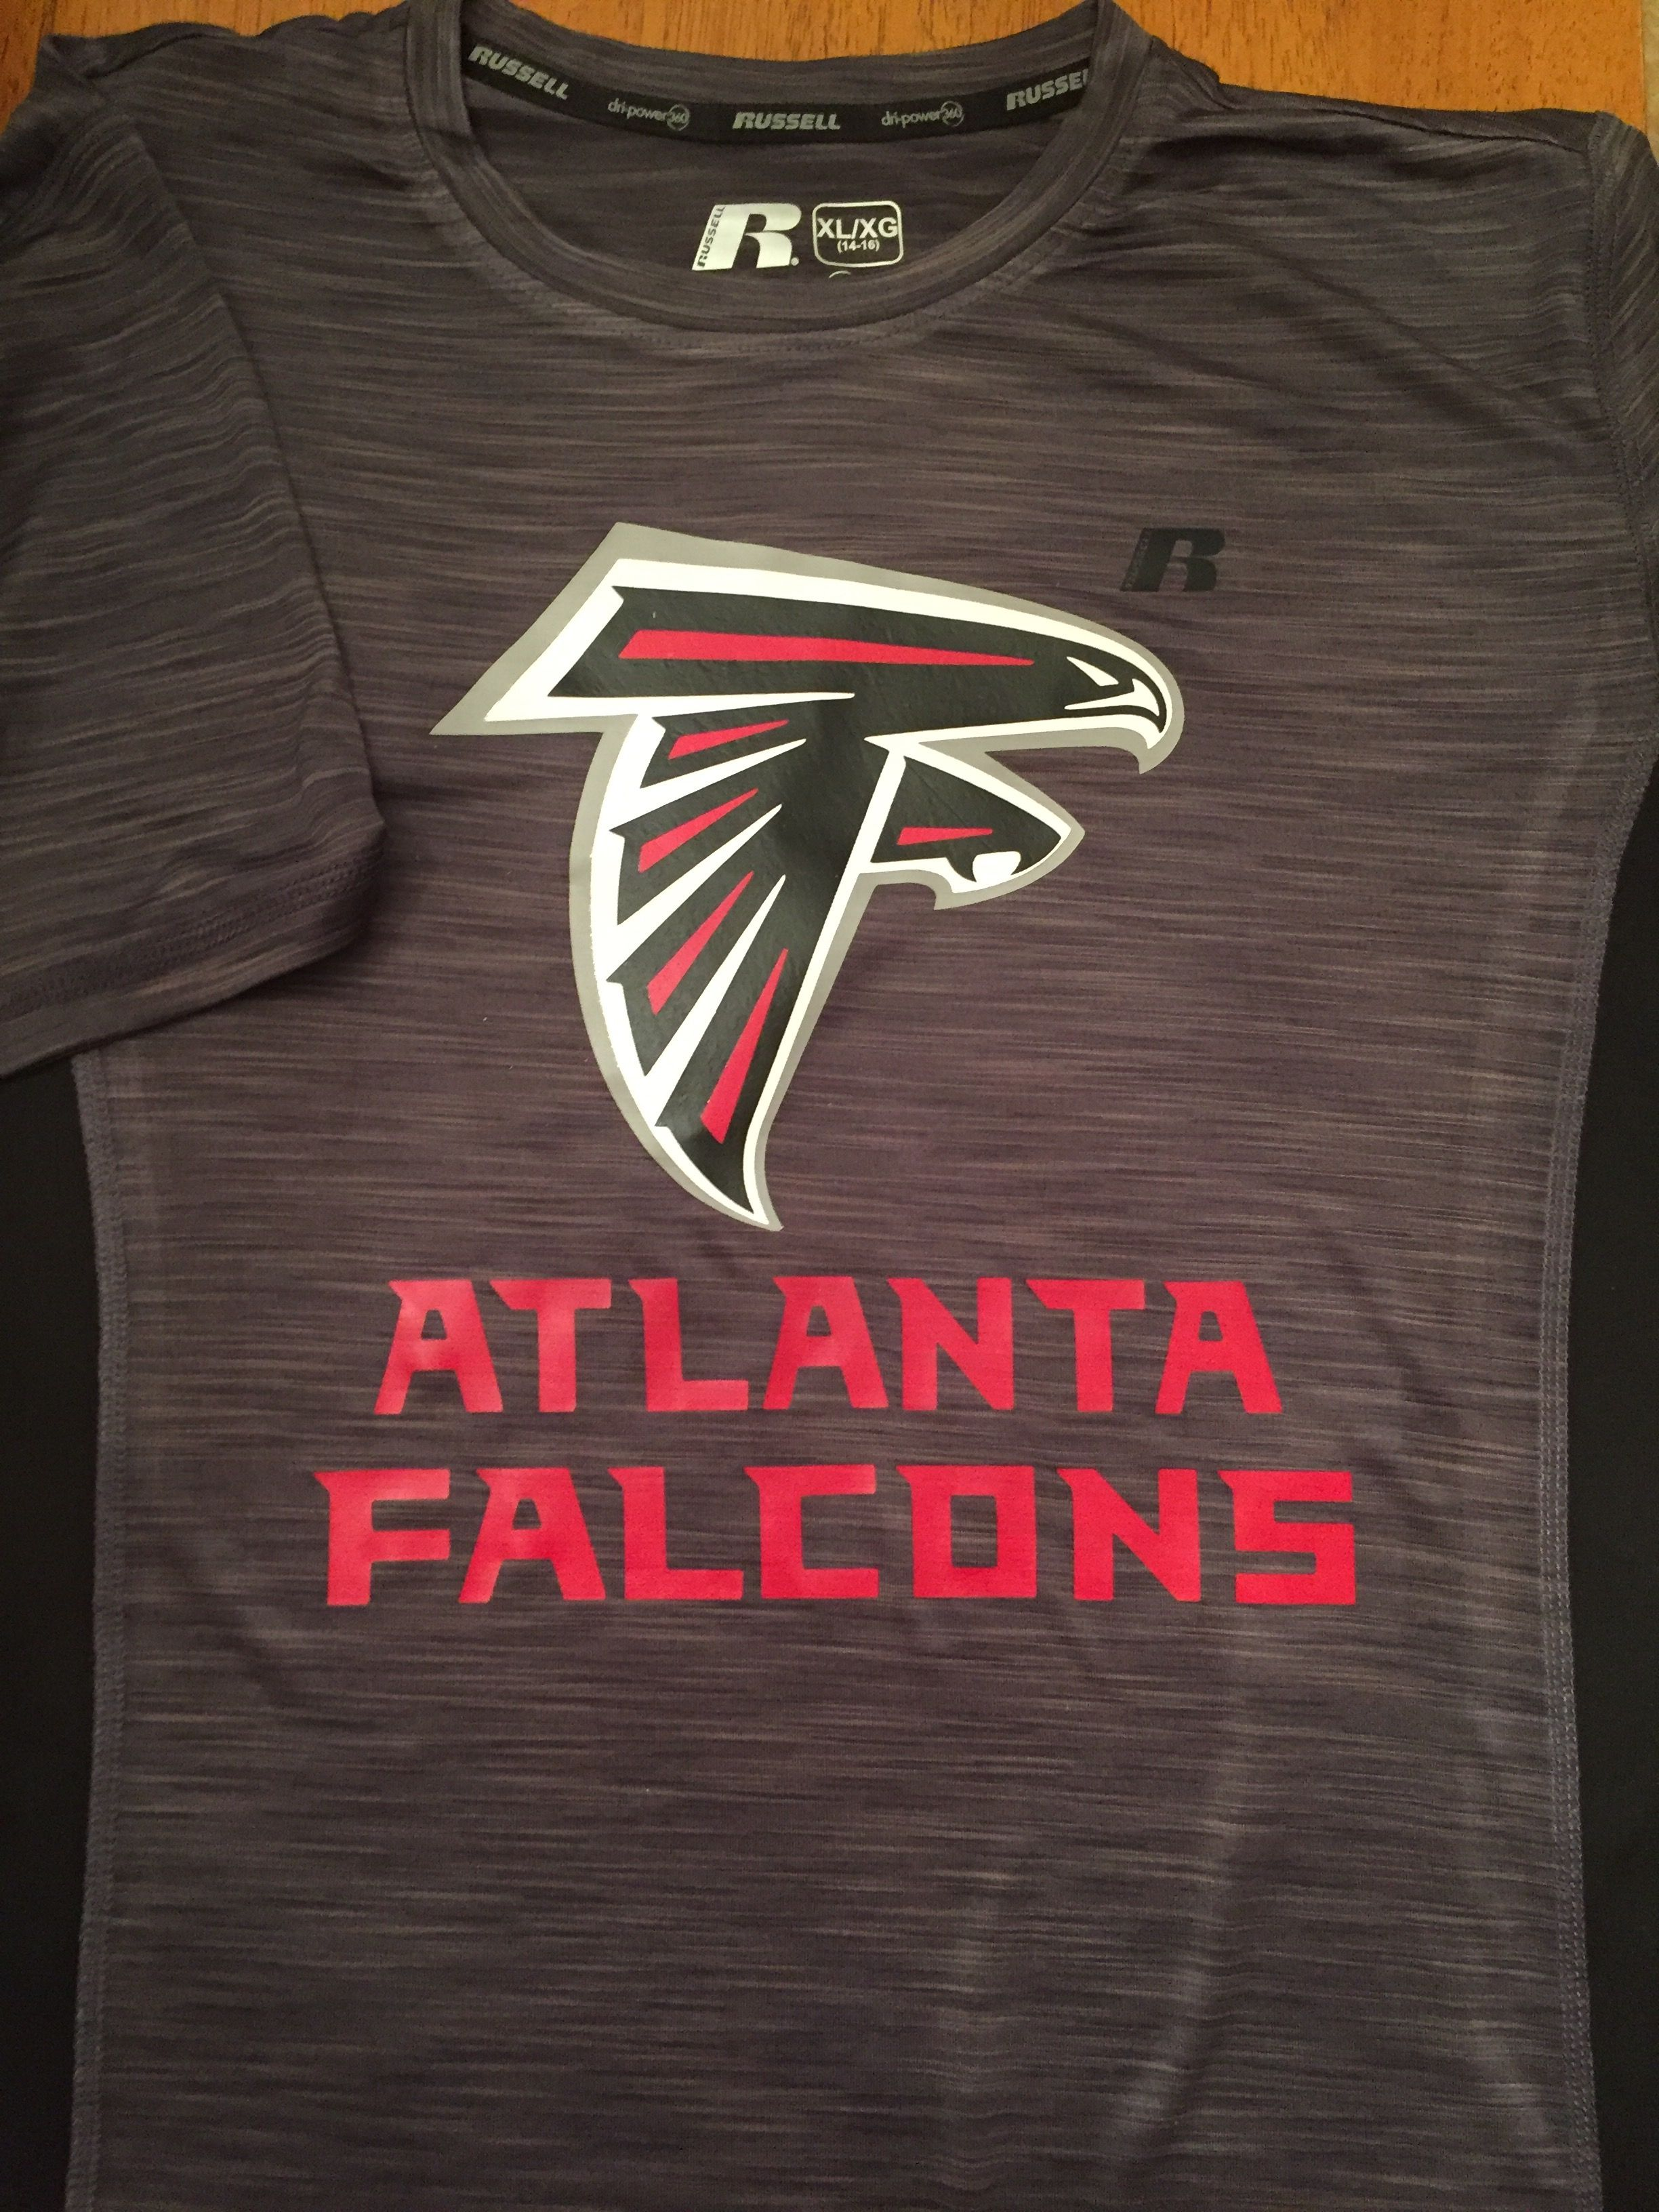 Atlanta Falcons T Shirt With Red Black Gray Silver And White Siser Easyweed Heat Transfer Vinyl Htv Atlanta Falcons T Shirt Atlanta Falcons Falcon Logo